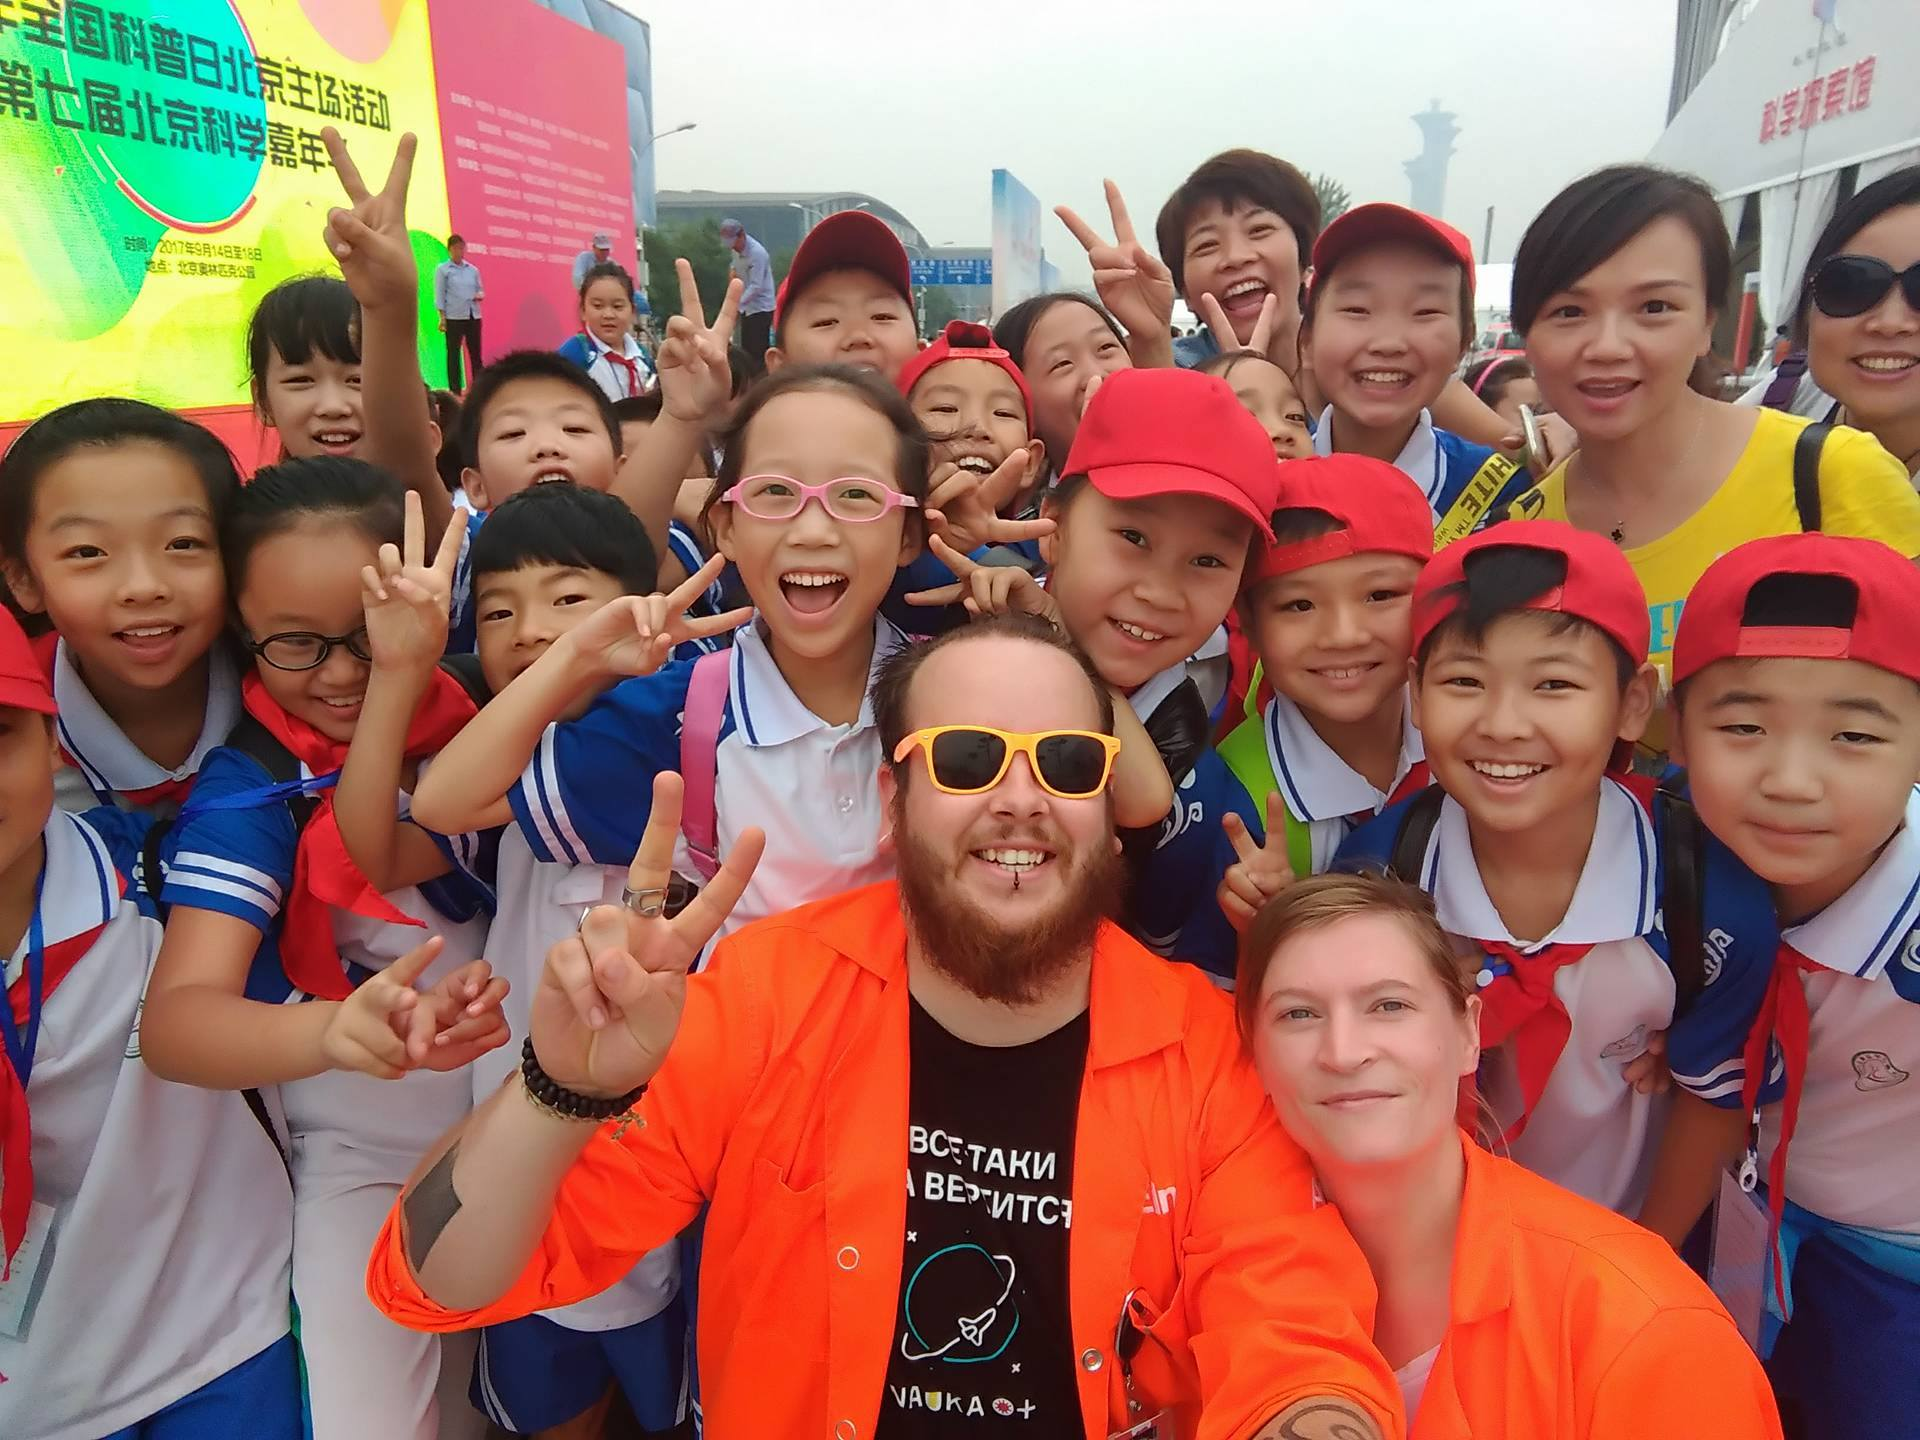 Science Centre AHHAA: Report from Beijing Science Festival 2017